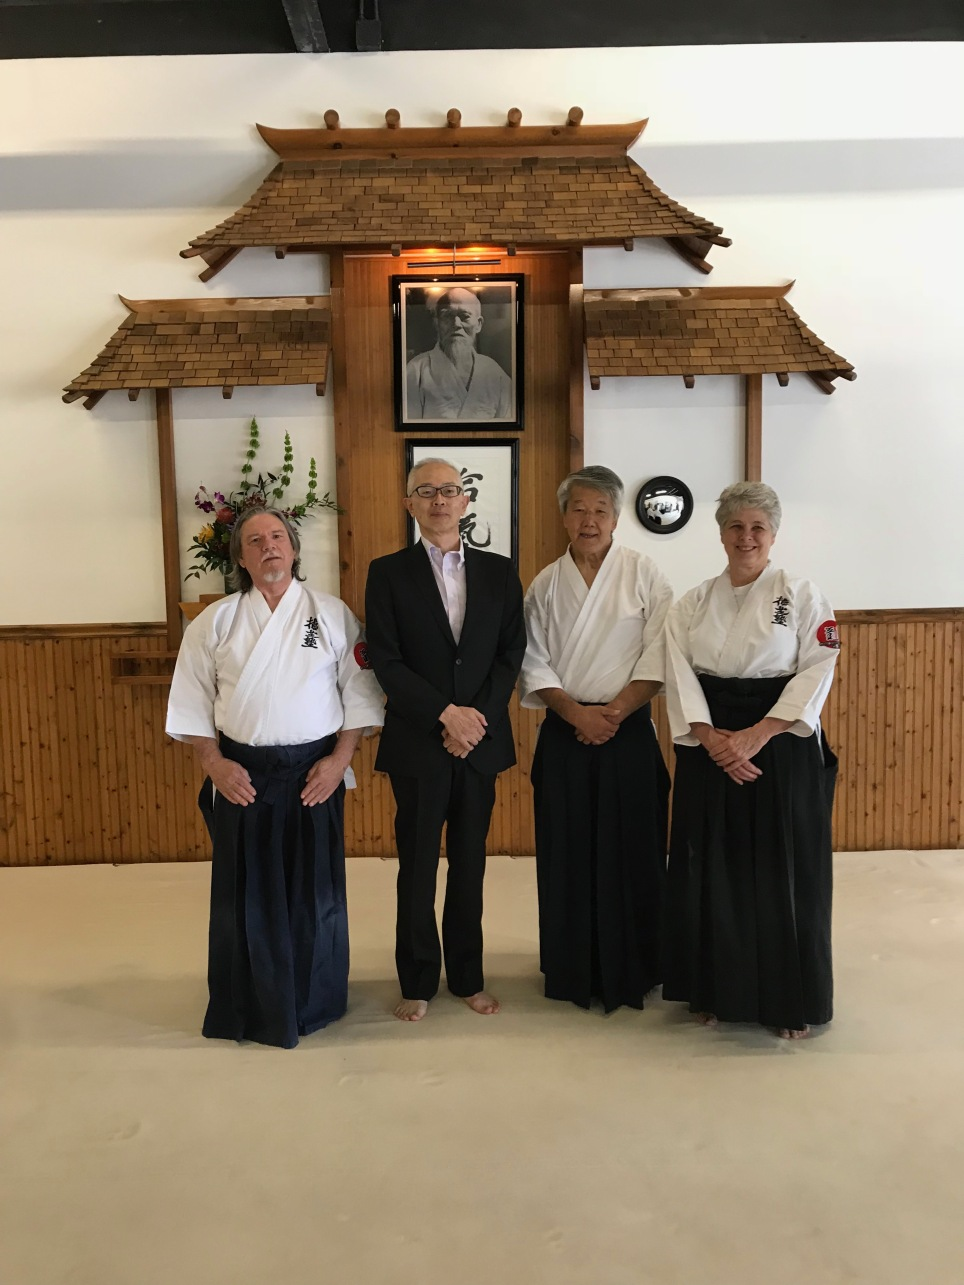 We were honored by a visit from the Consulate General of Japan